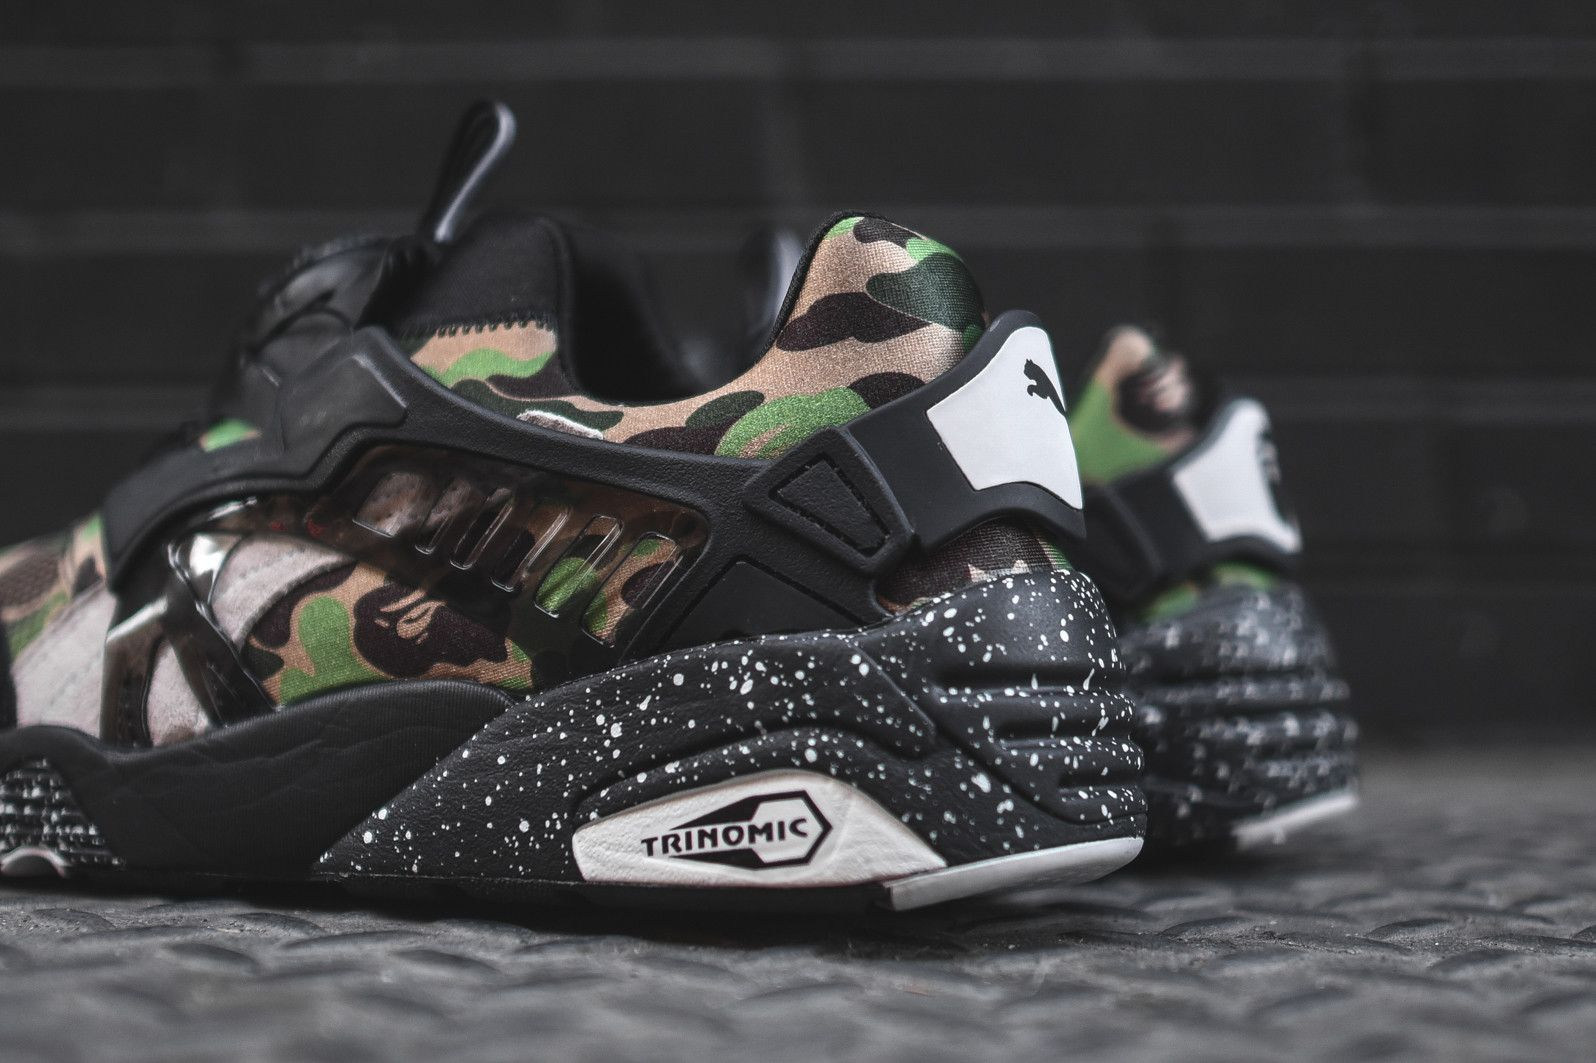 puma x bape disc blaze black camo sneakerhead. Black Bedroom Furniture Sets. Home Design Ideas